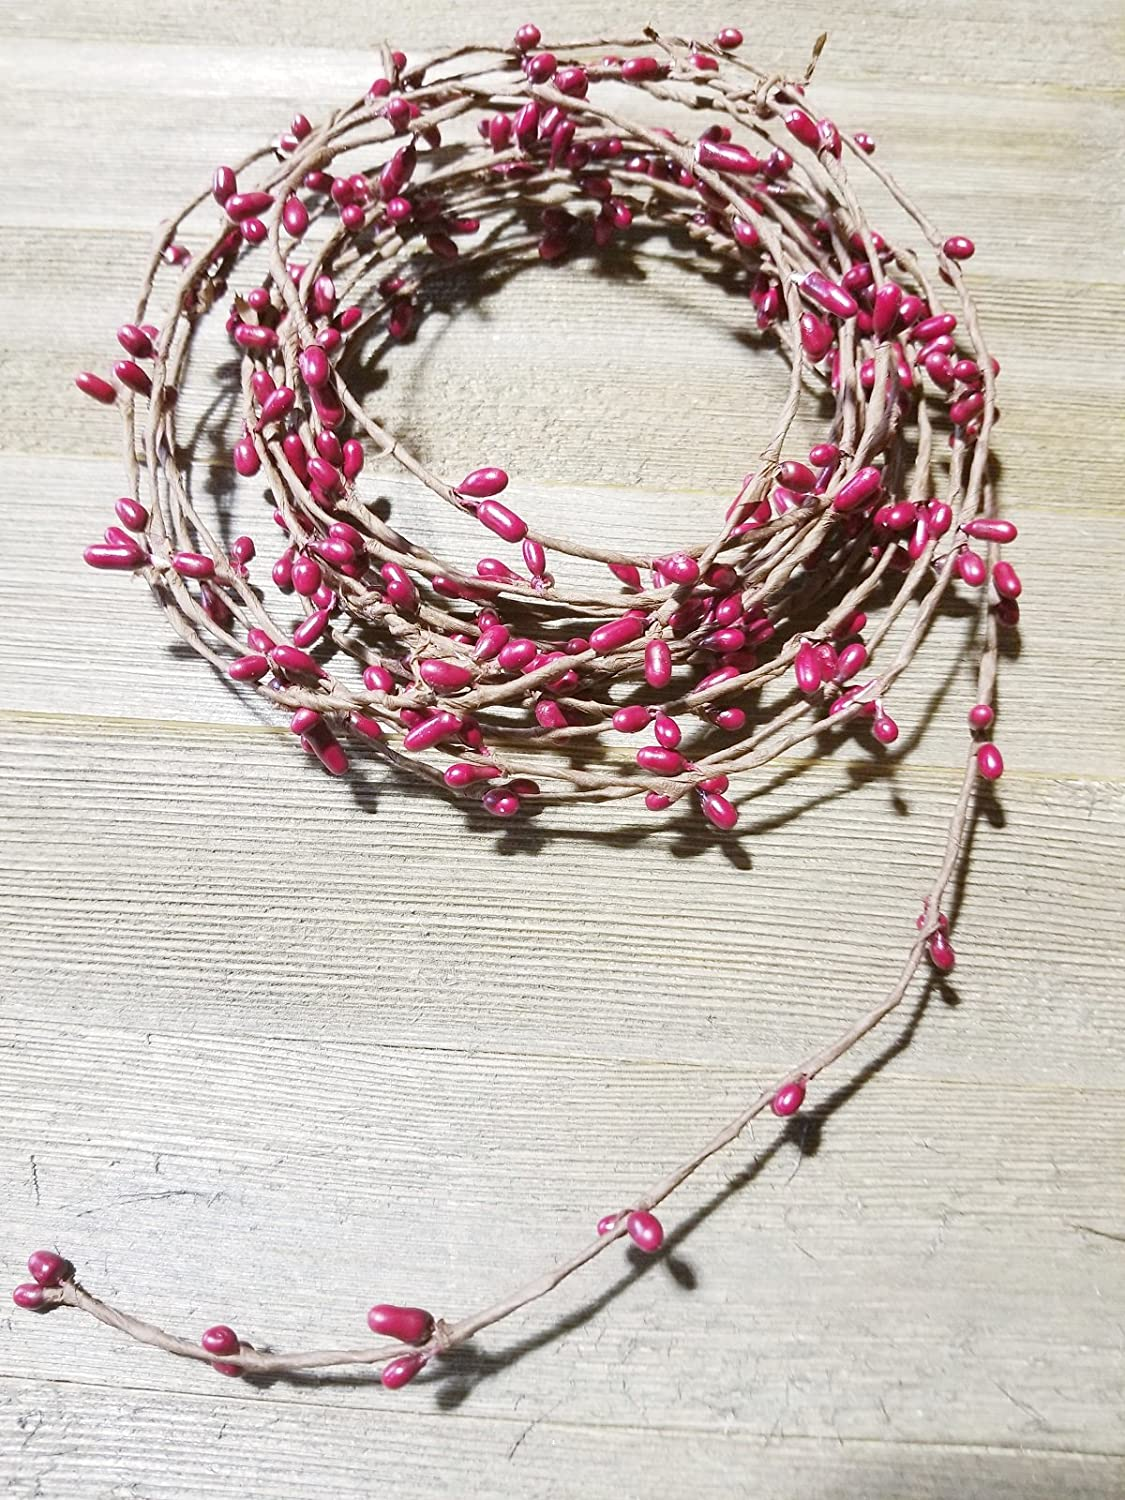 3 Strands of 6 Garland that Can Be Utilized Separately or Twisted together to Equal 18 Feet Of String Garland Red Pip Berry Single Ply Garland 18 Country Primitive Floral Craft Decor